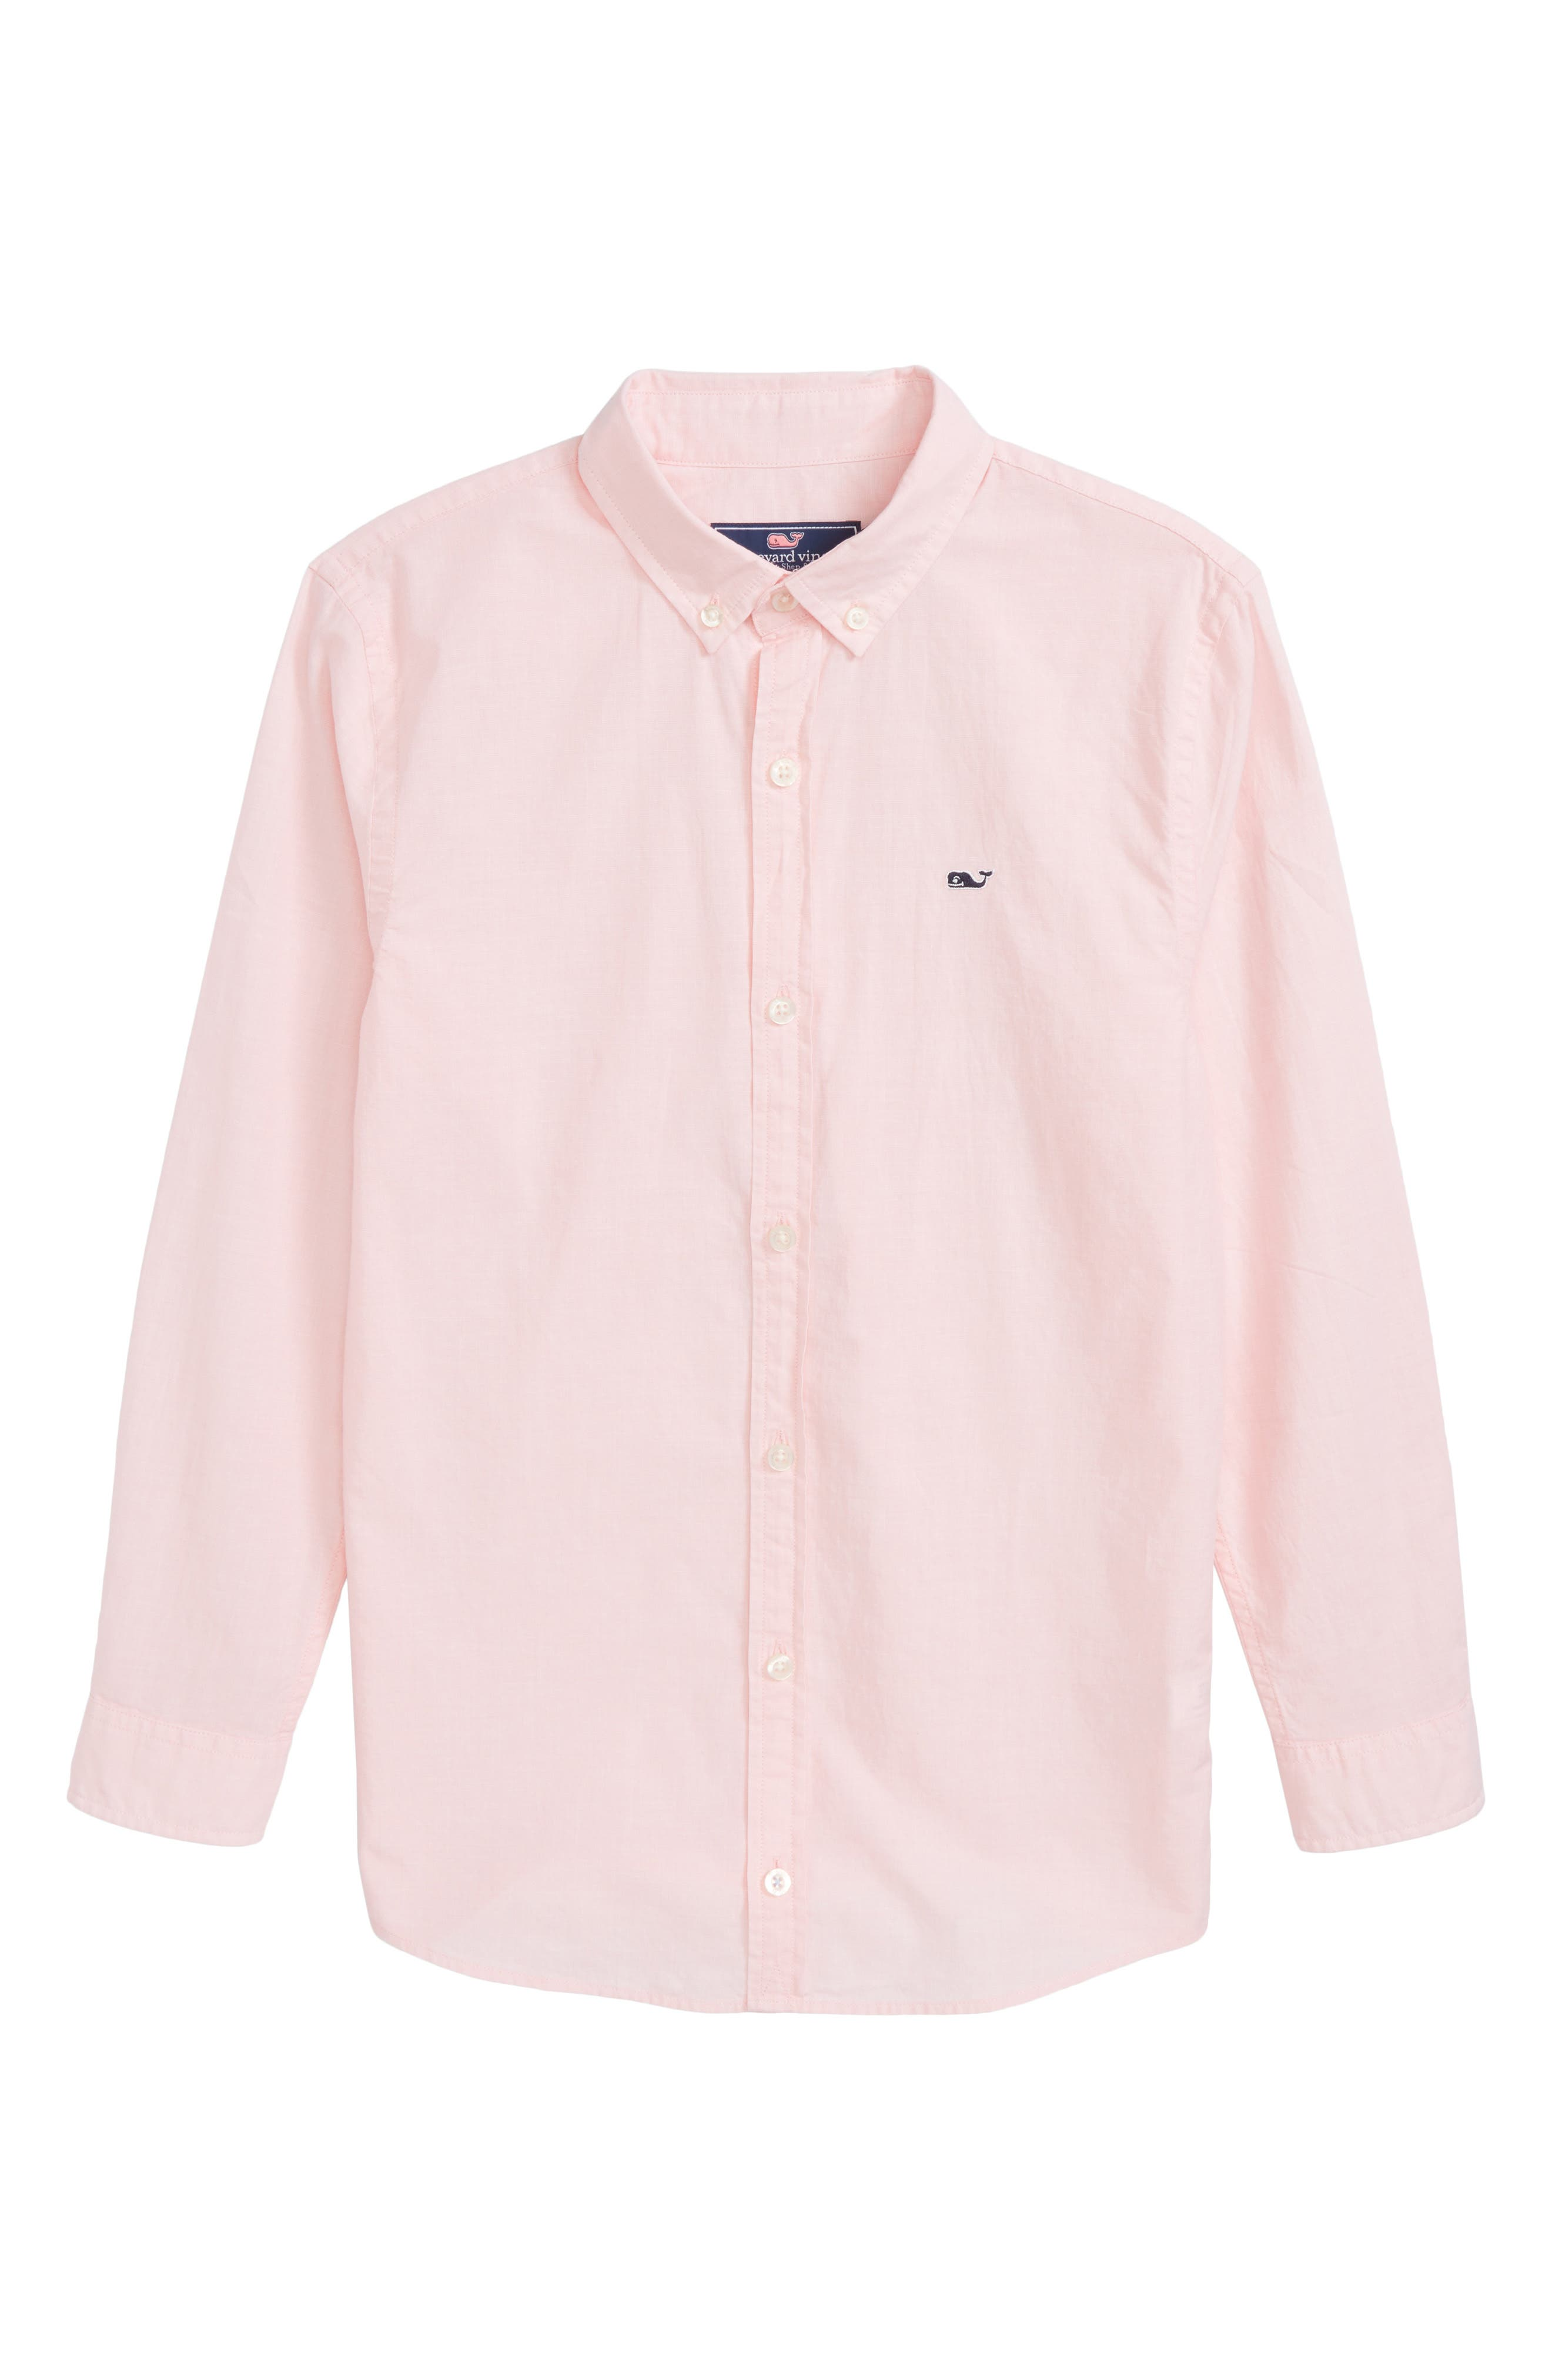 Whale Woven Shirt,                         Main,                         color, Cape Coral